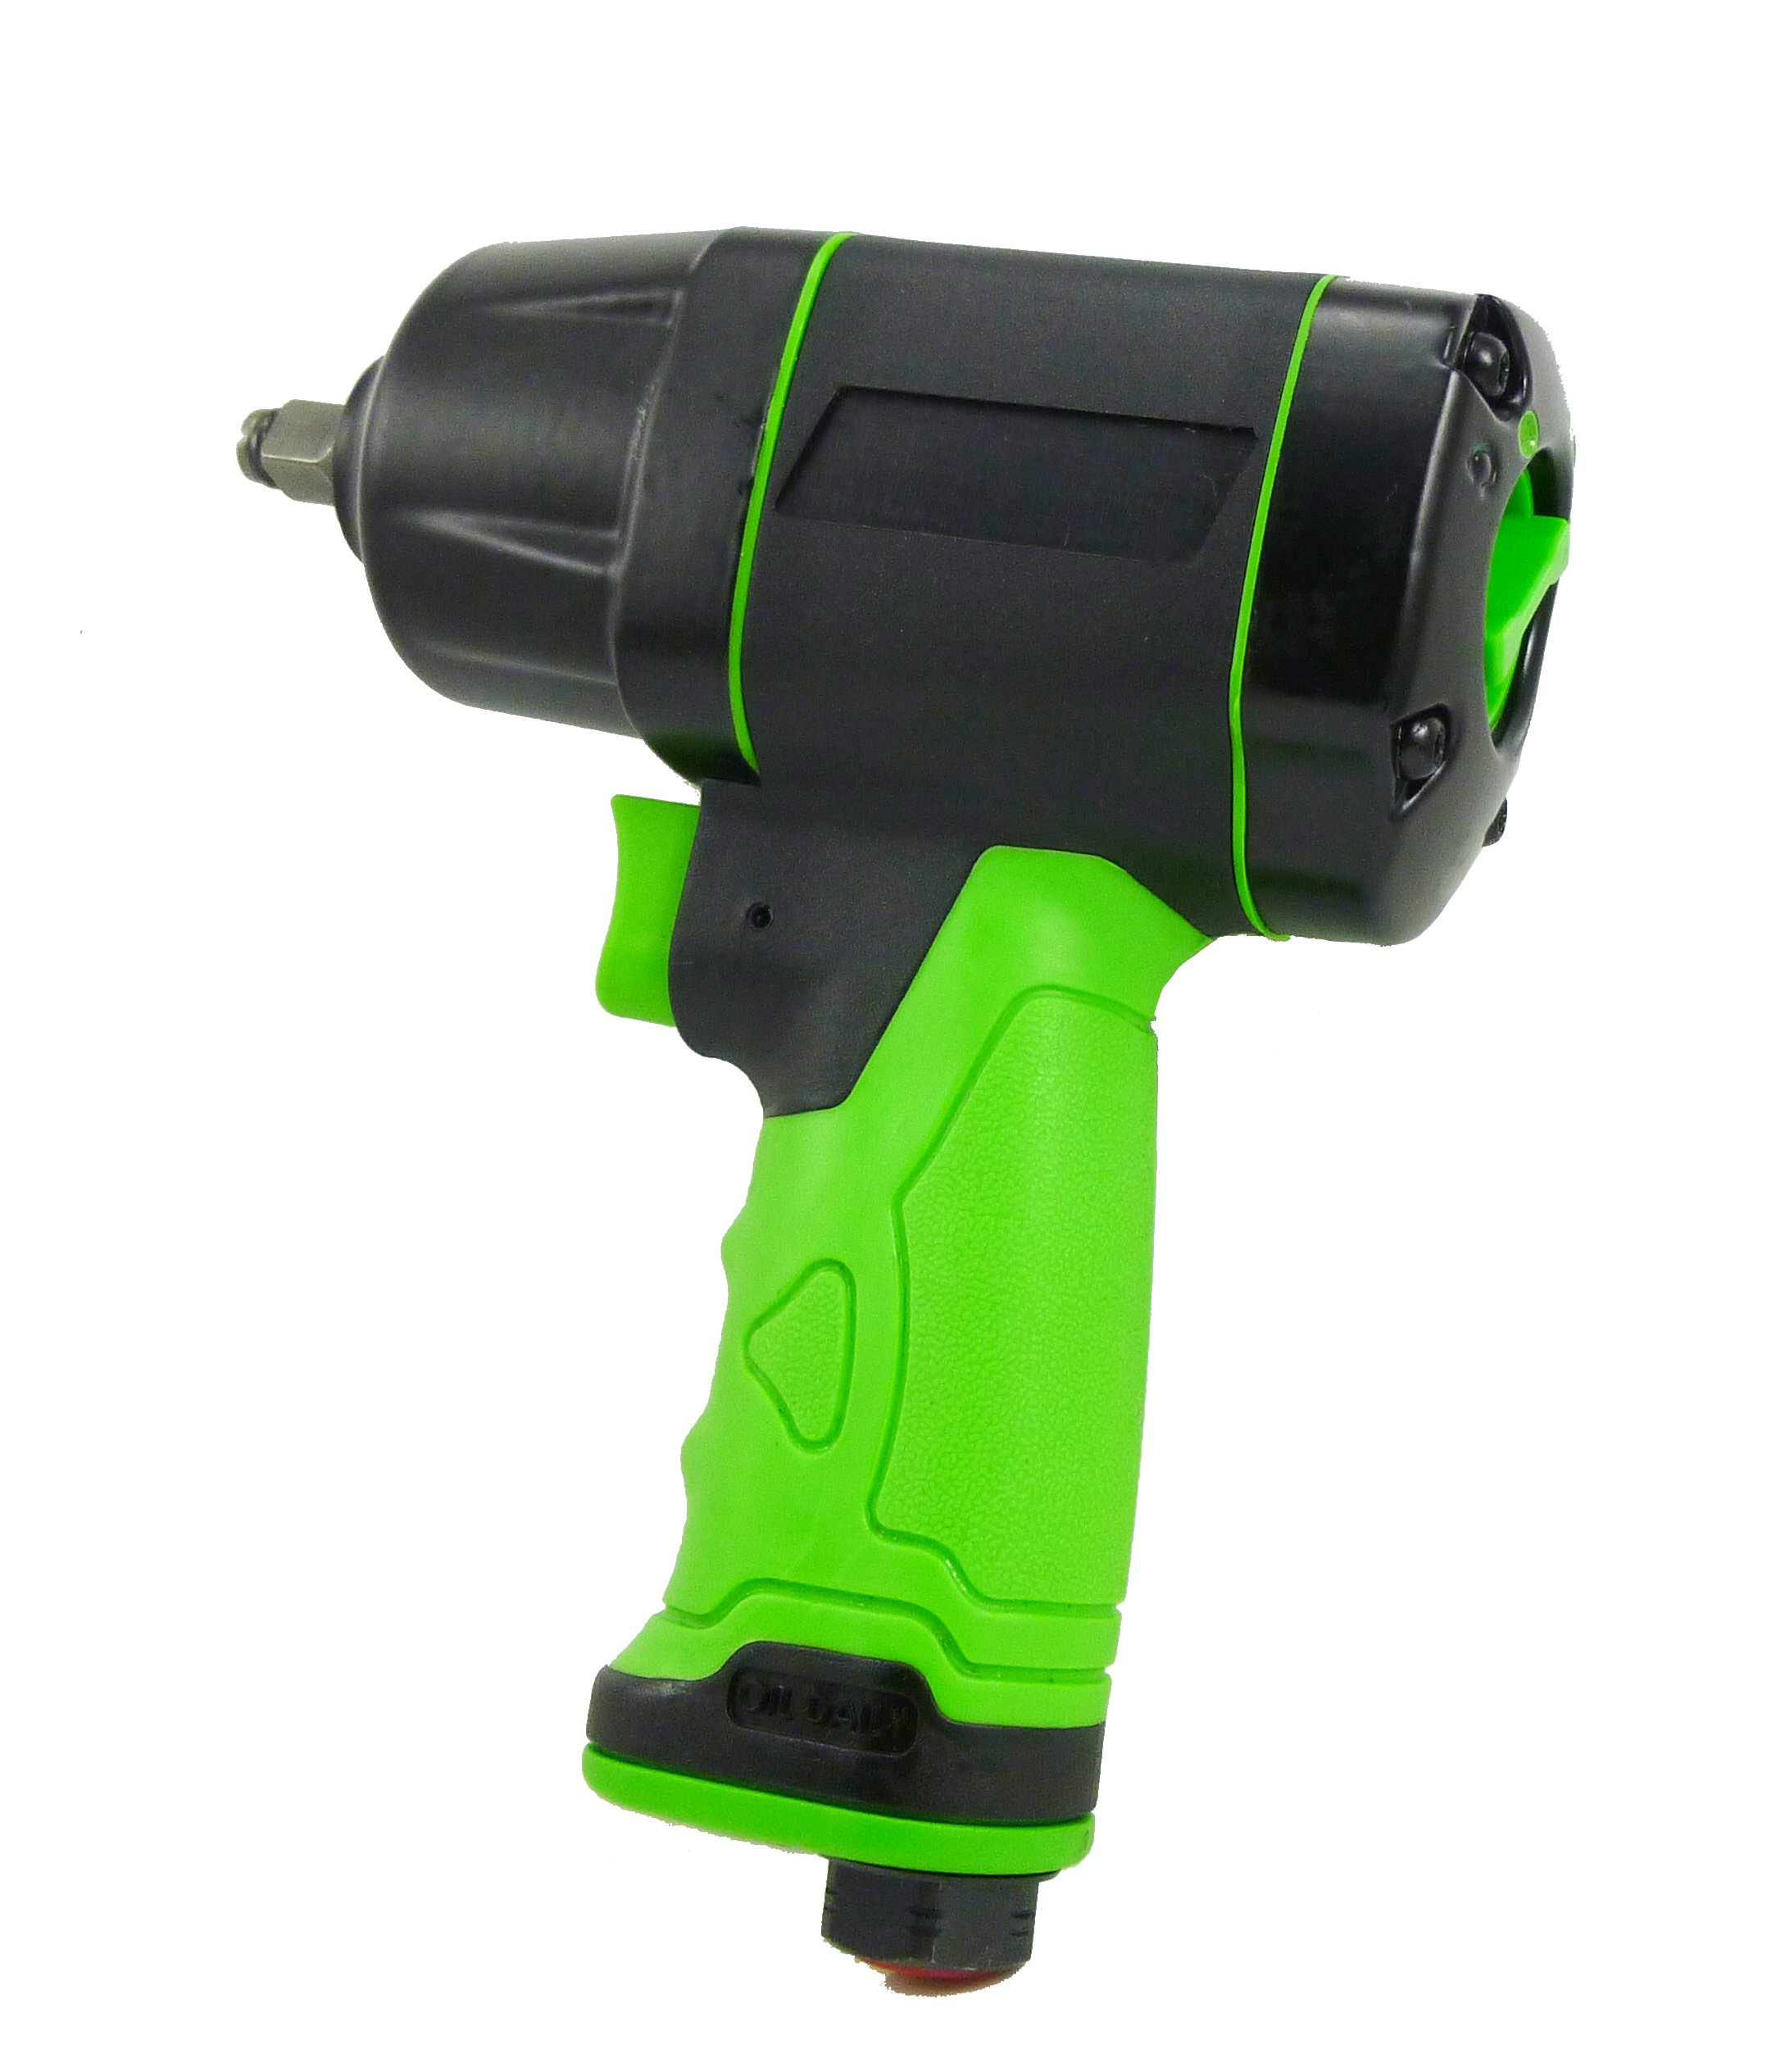 Dynamic Power 3/8'' Air Impact Wrench 240 ft-lb of torque. Bulit-in Power Regulartor to Control Speed and Torque. D-63061